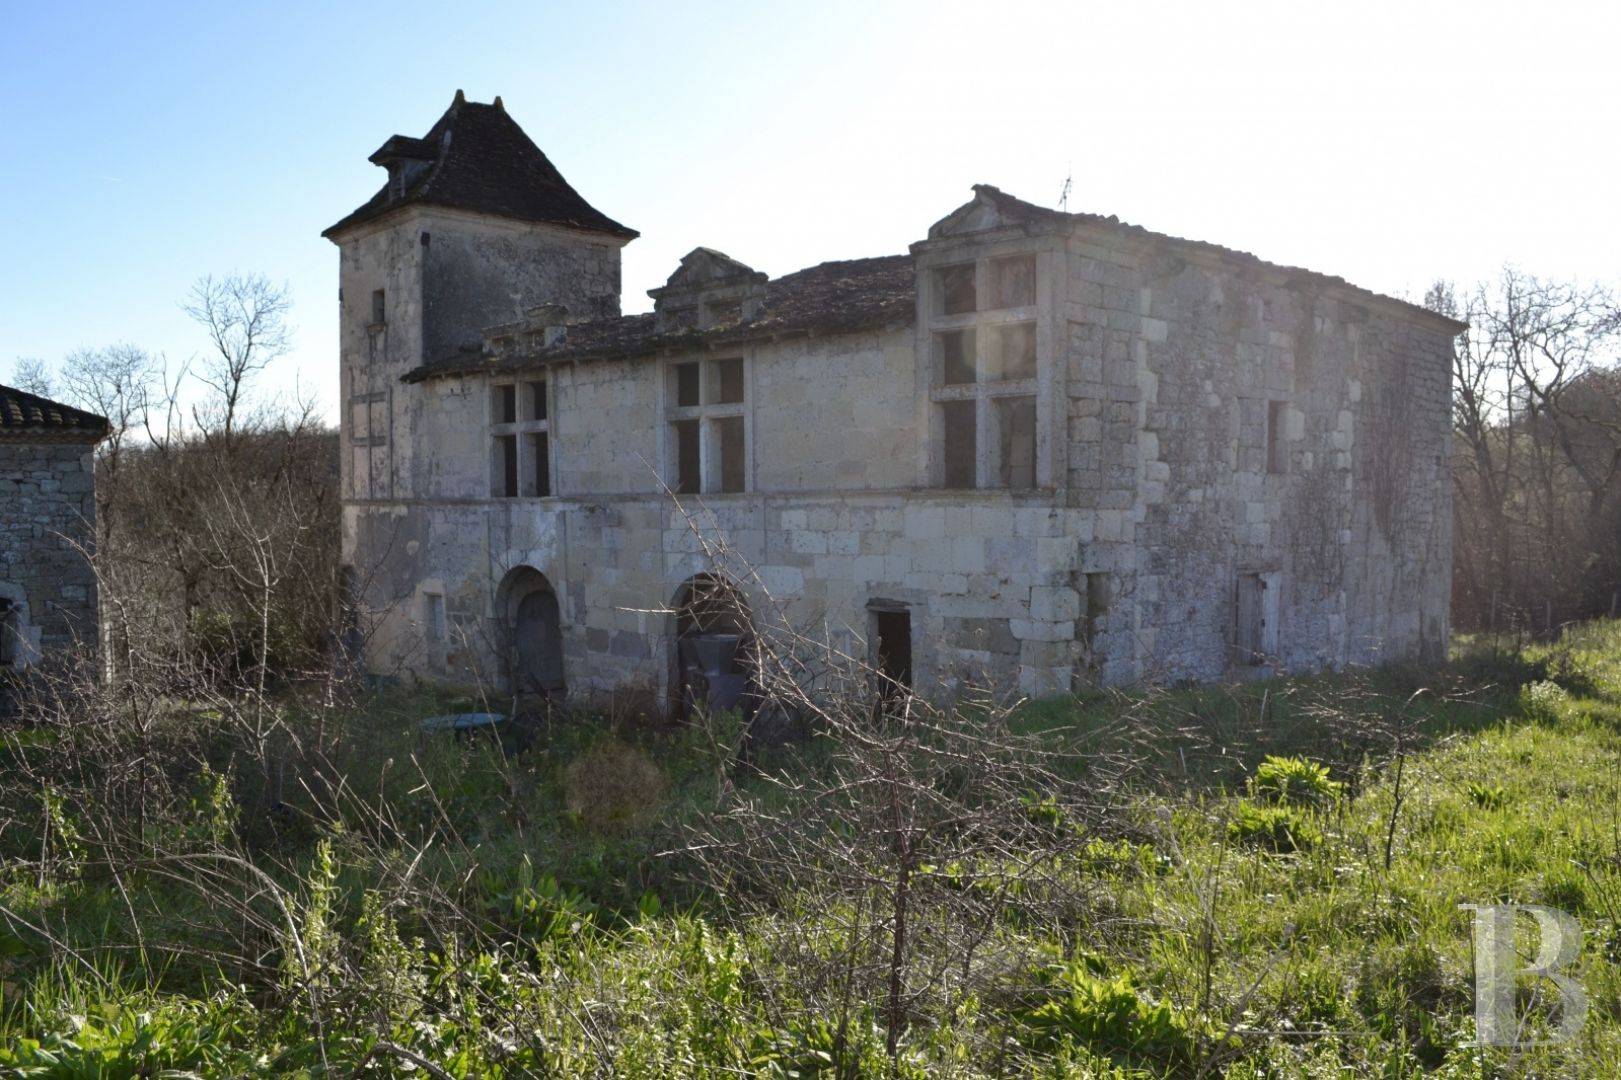 property for sale France aquitaine stronghold house - 11 zoom